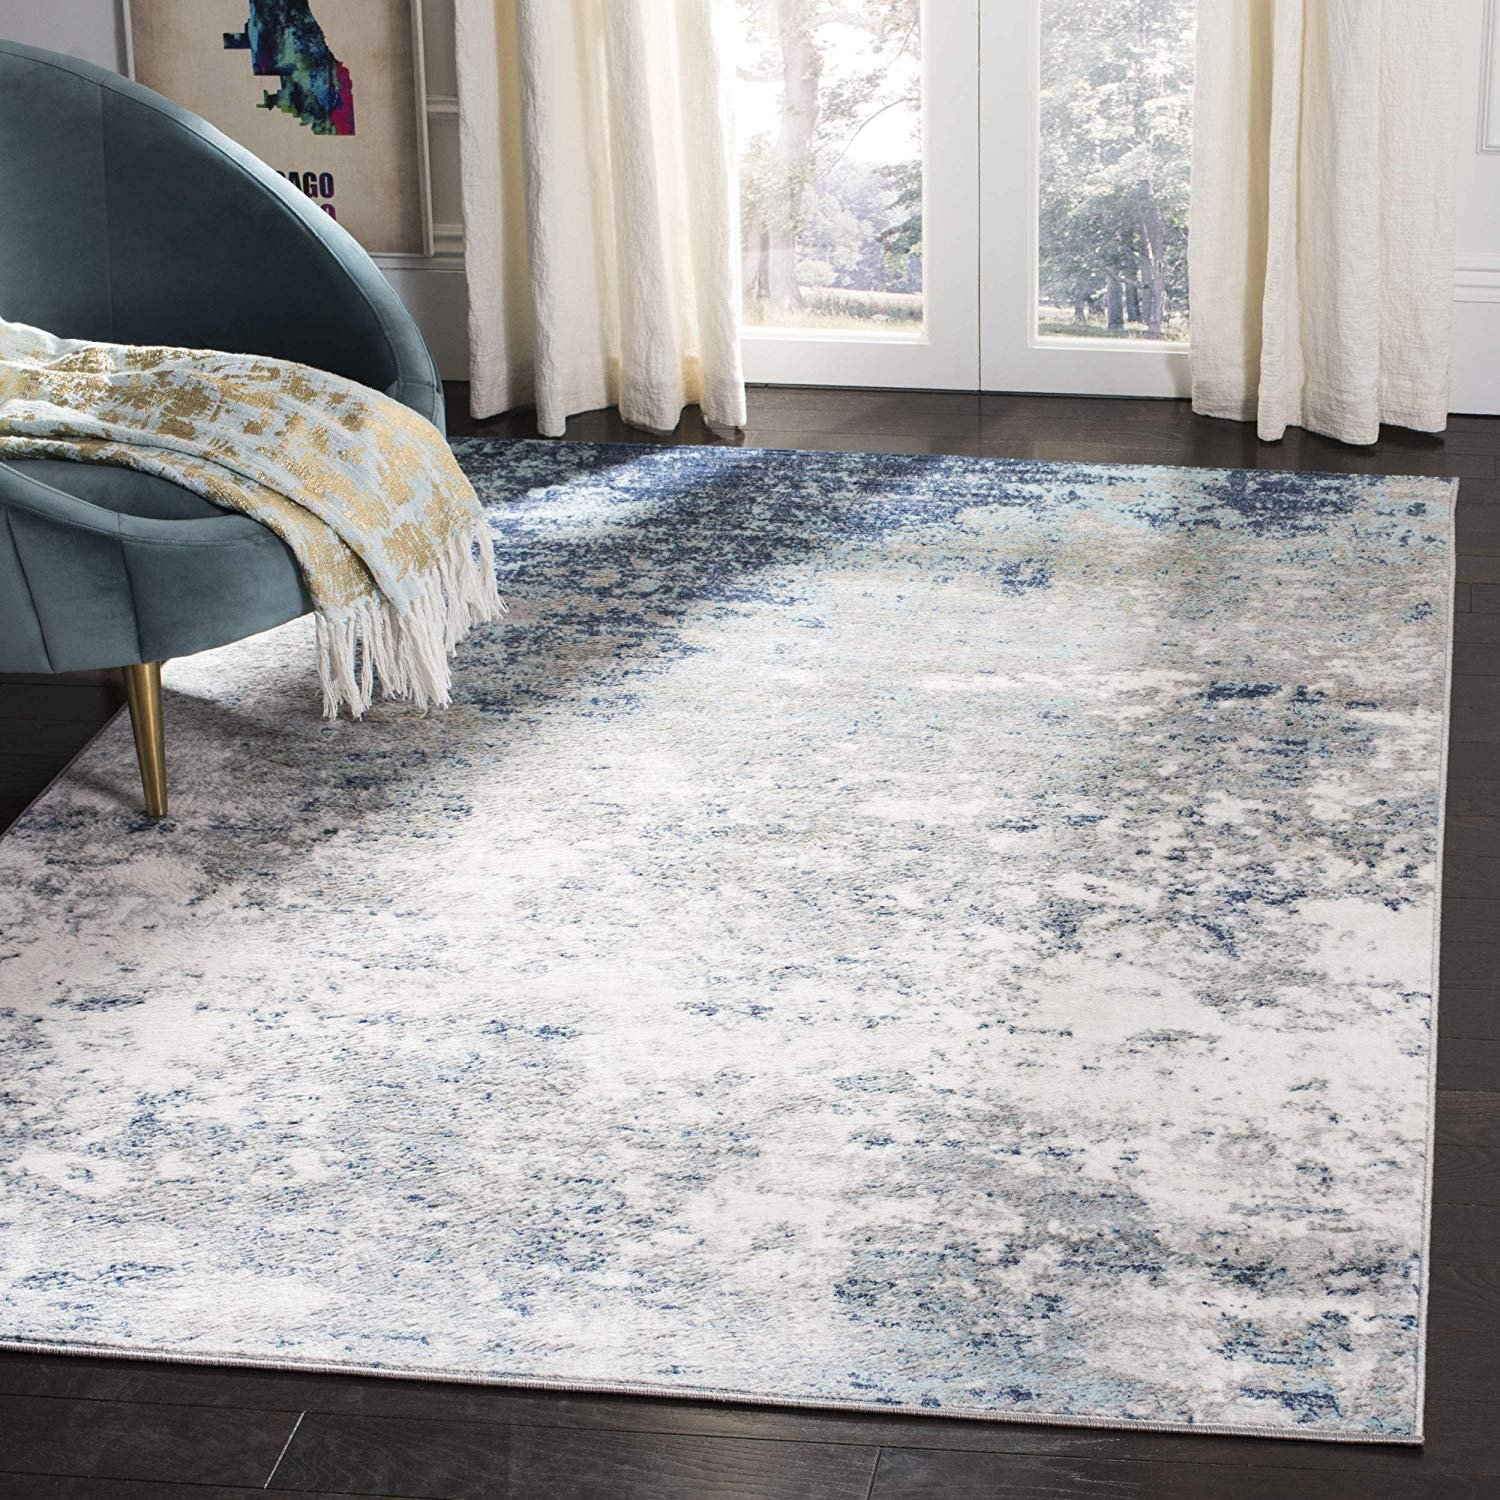 Safavieh Brentwood Collection Bnt822f Light Grey And Blue Area 3 X 5 Rug Walmart Com Walmart Com